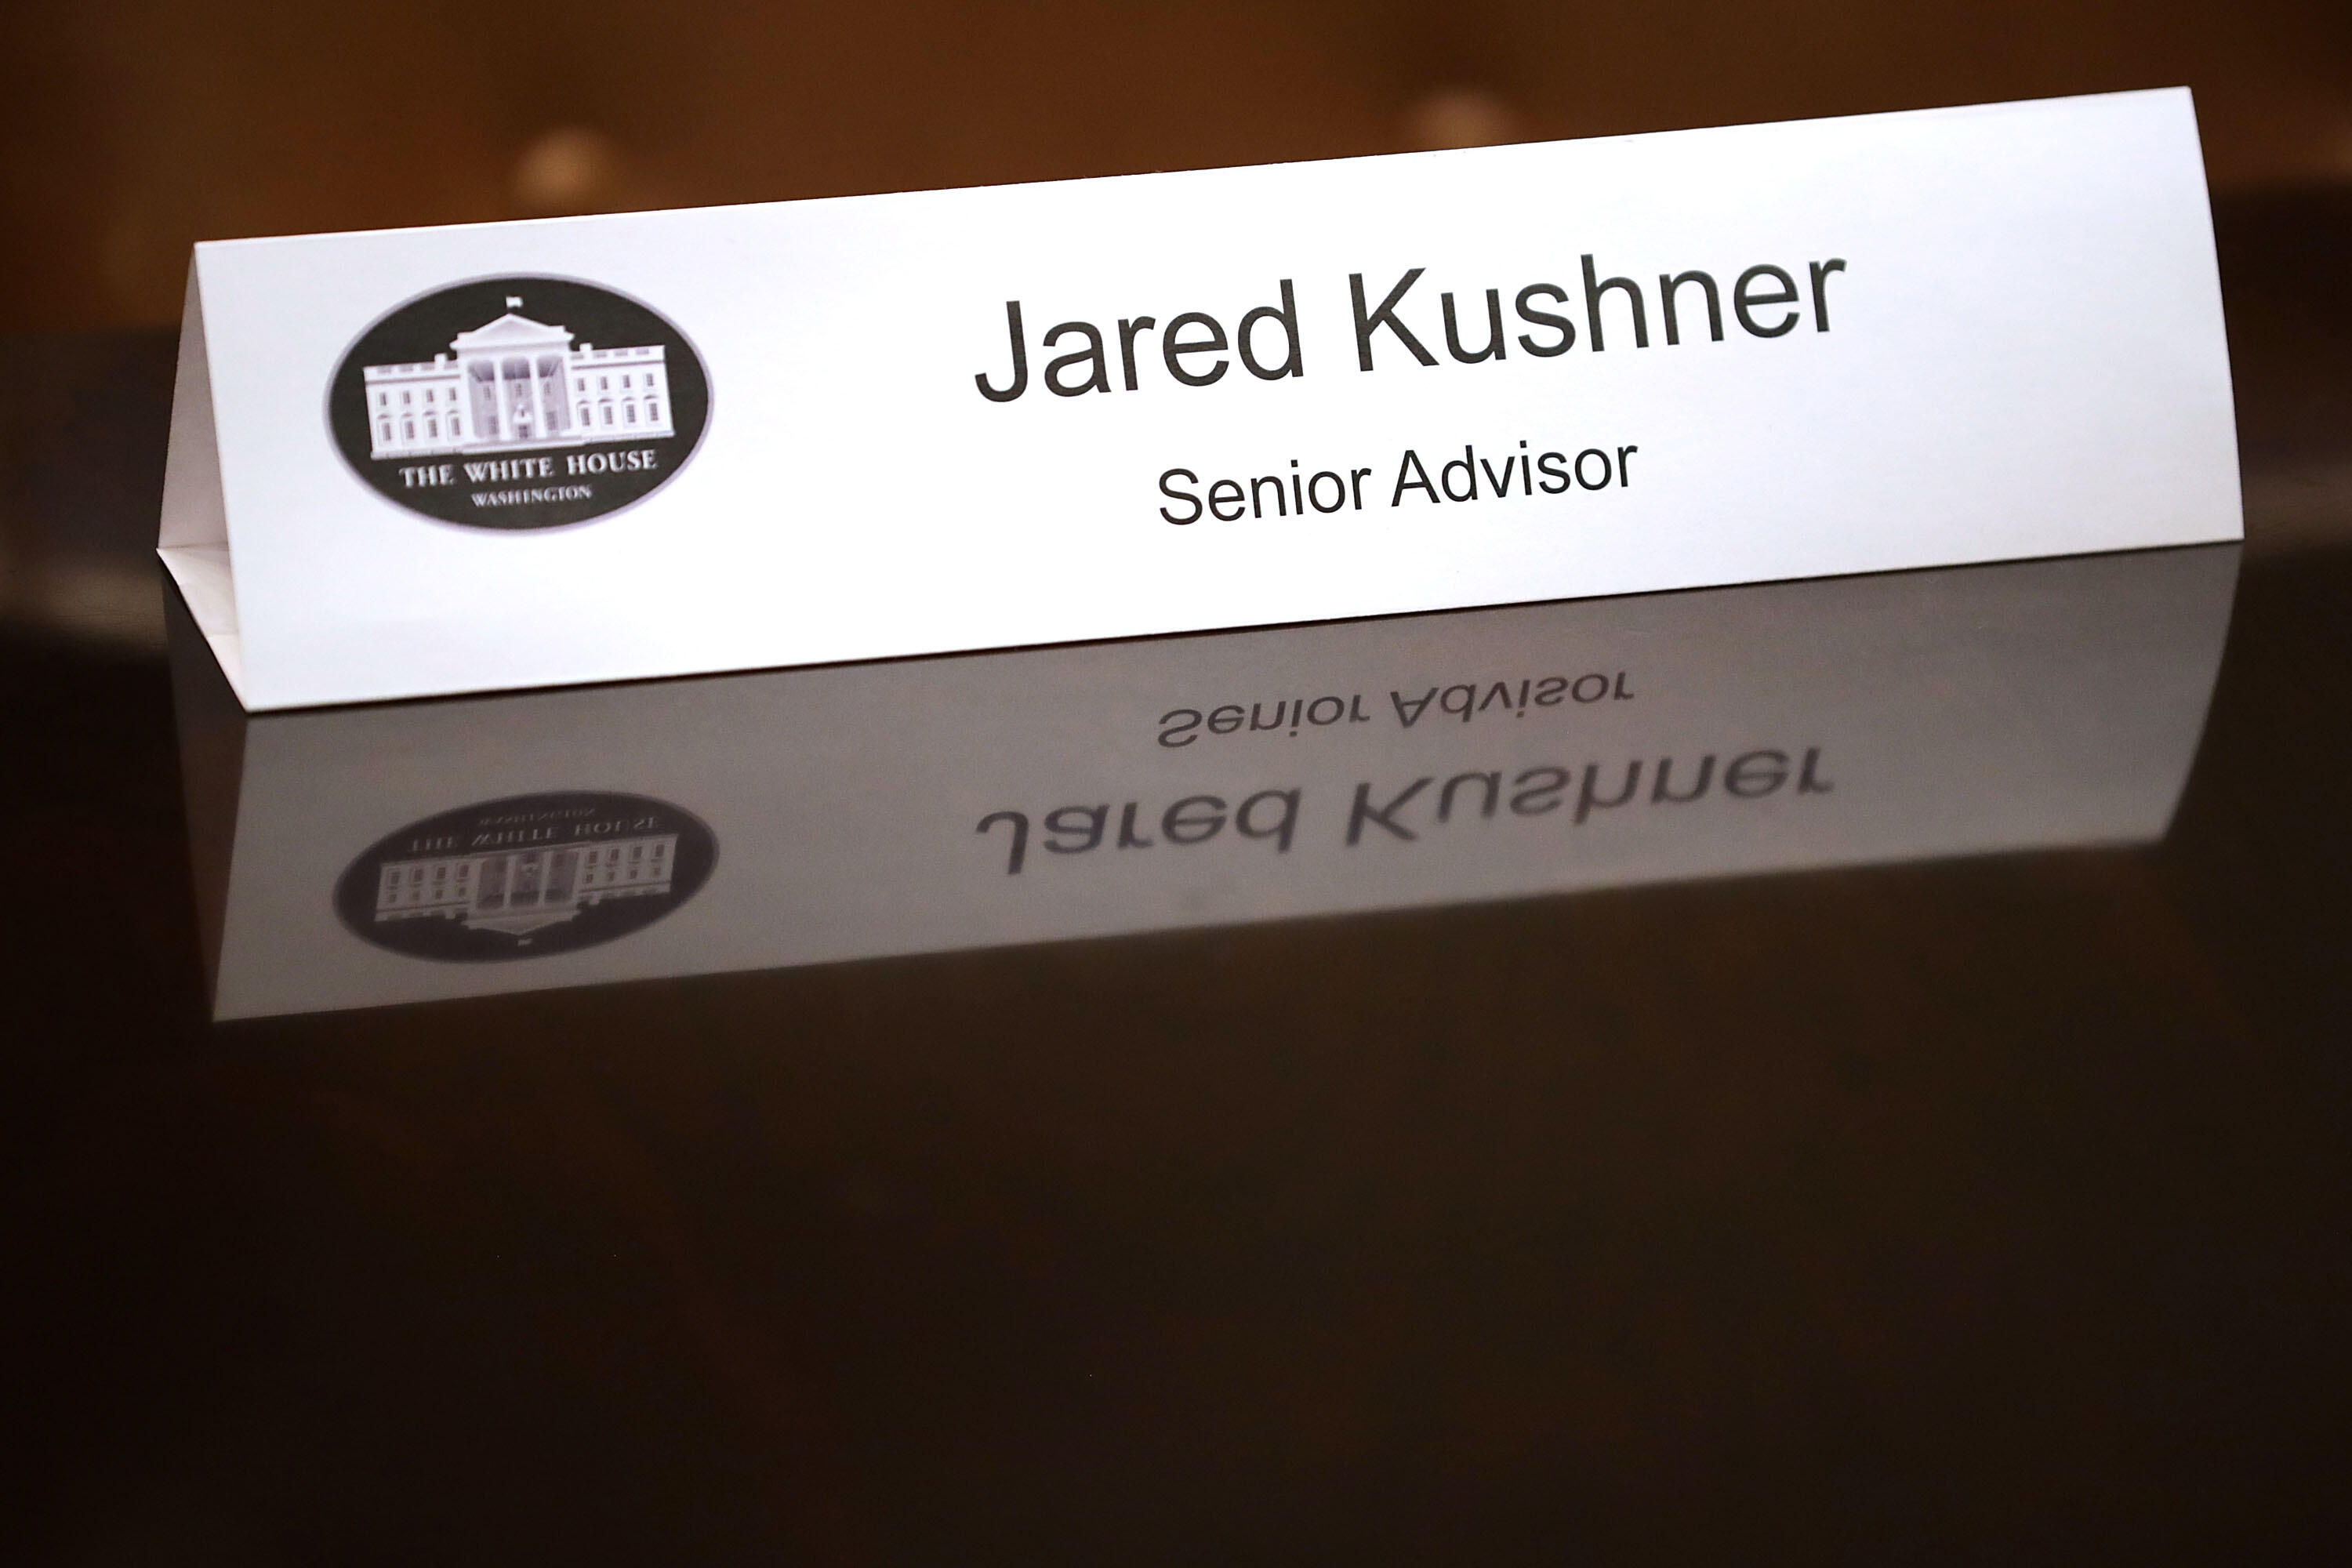 WASHINGTON, DC - JANUARY 31:  The name place card for White House Senior Advisor Jared Kushner, who is also the son-in-law of President Donald Trump, sits on the table before a meeting about cyber security in the Roosevelt Room at the White House January